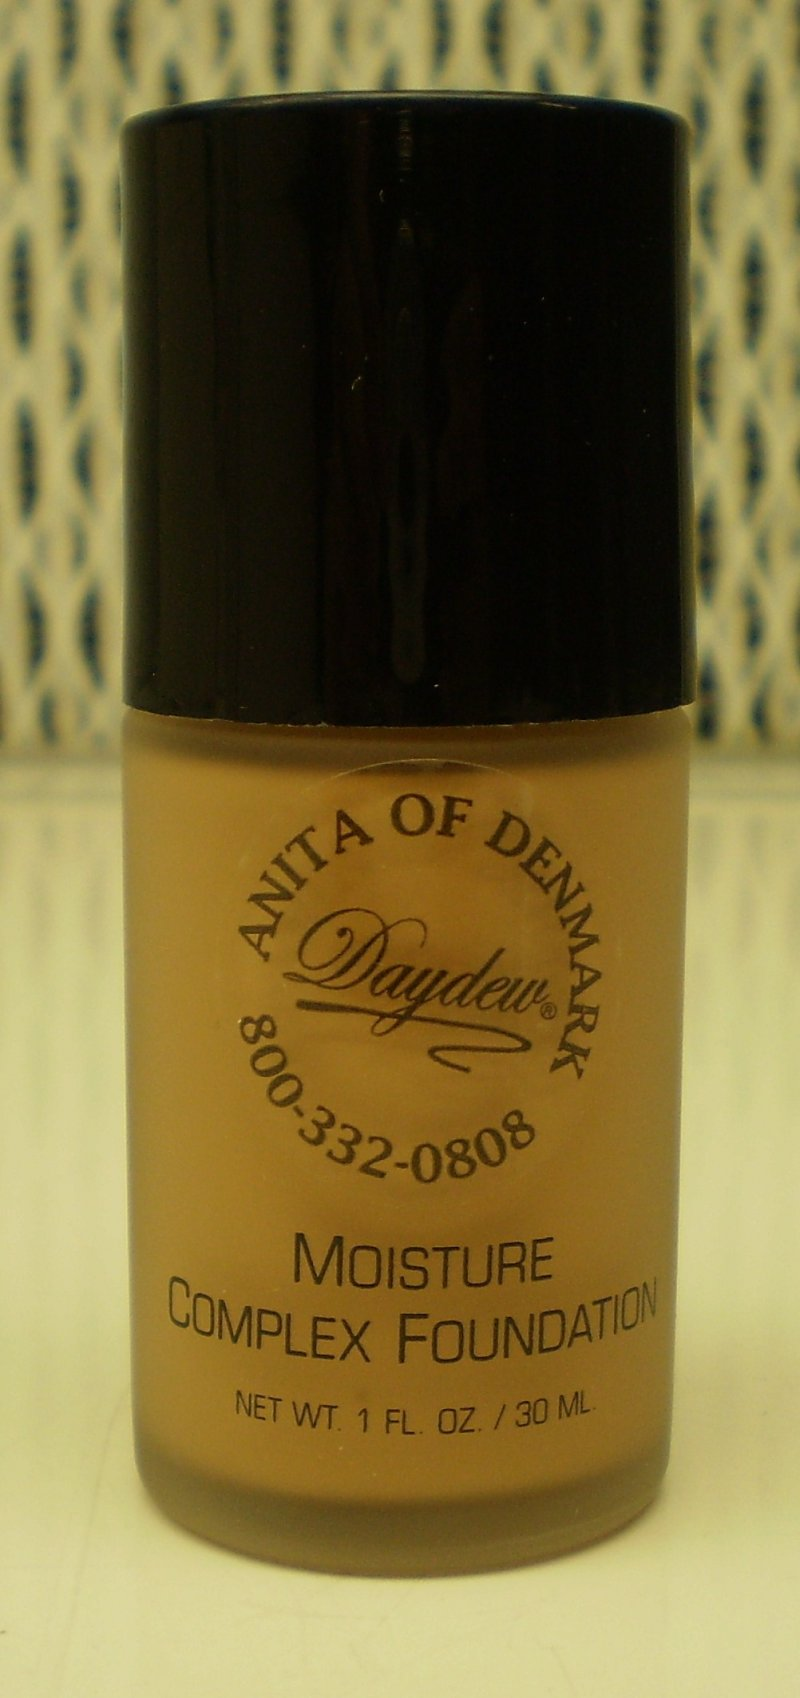 Daydew Custom Blend Moisture Complex Foundation Makeup Honey Tan 1 oz